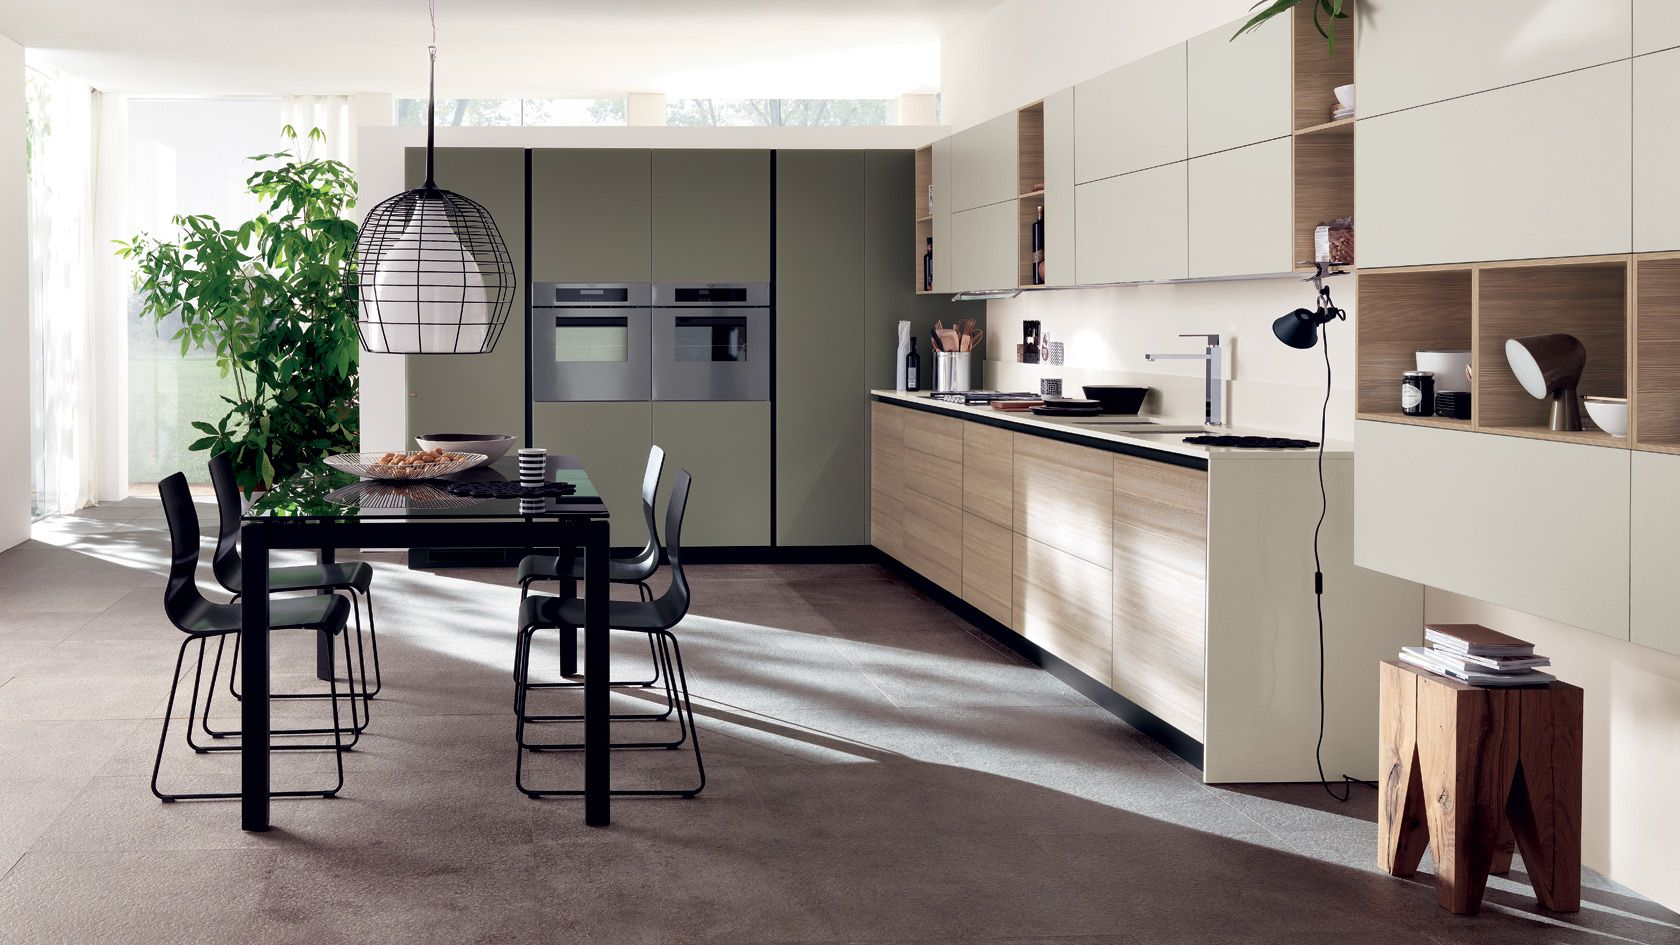 Cucina LiberaMente Scavolini | Modern kitchen furniture ...